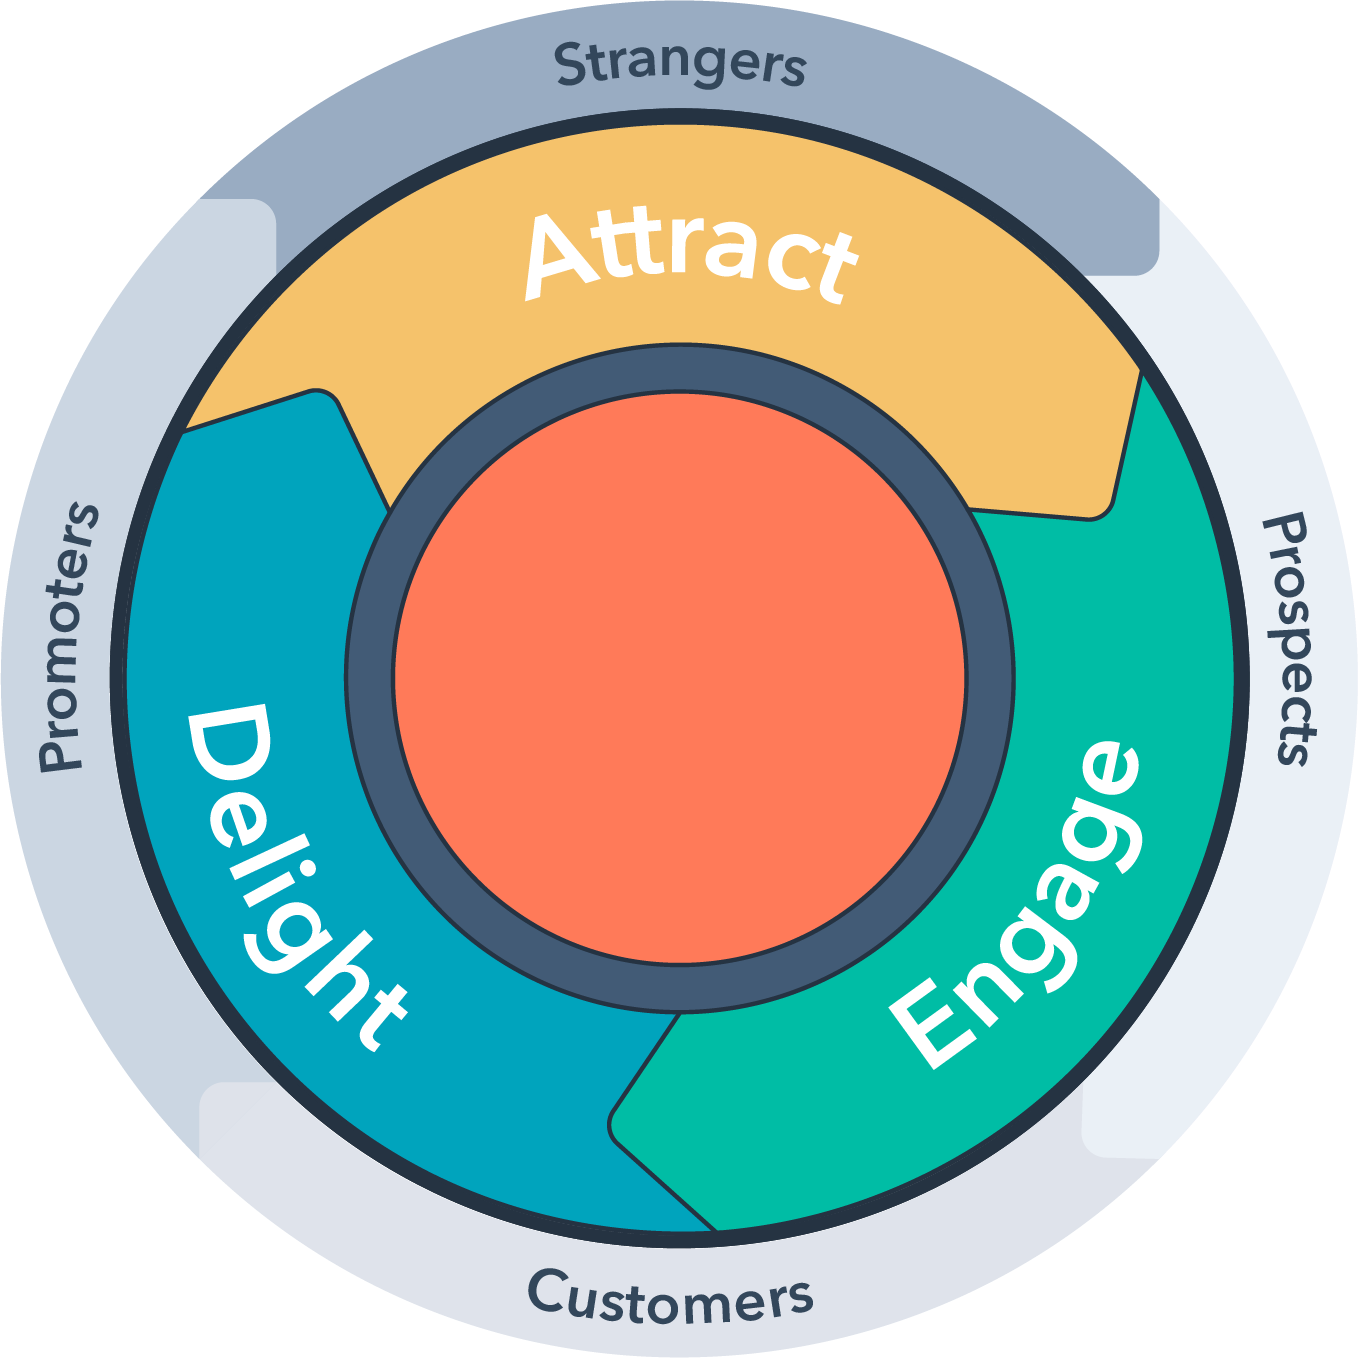 Marketing funnel stages: Here is the marketing flywheel